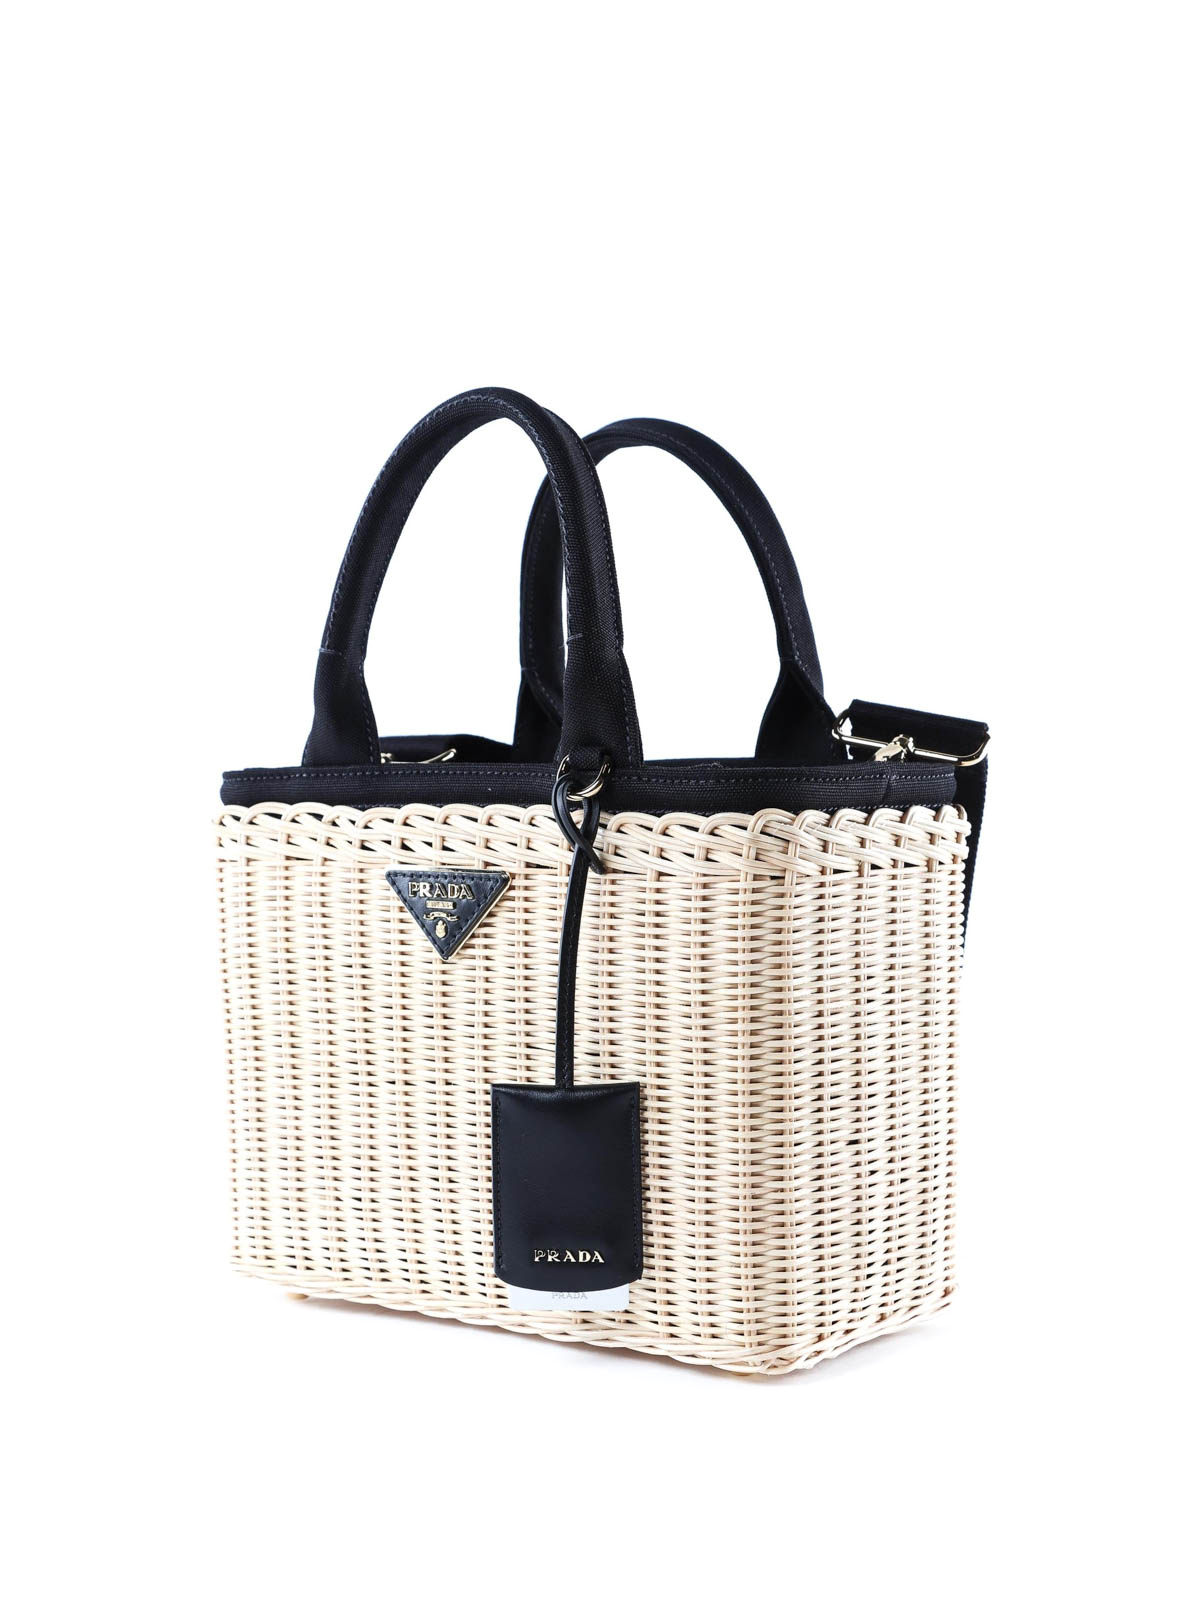 89ef05b18356 PRADA  totes bags online - Midollino wicker and canvas tote bag